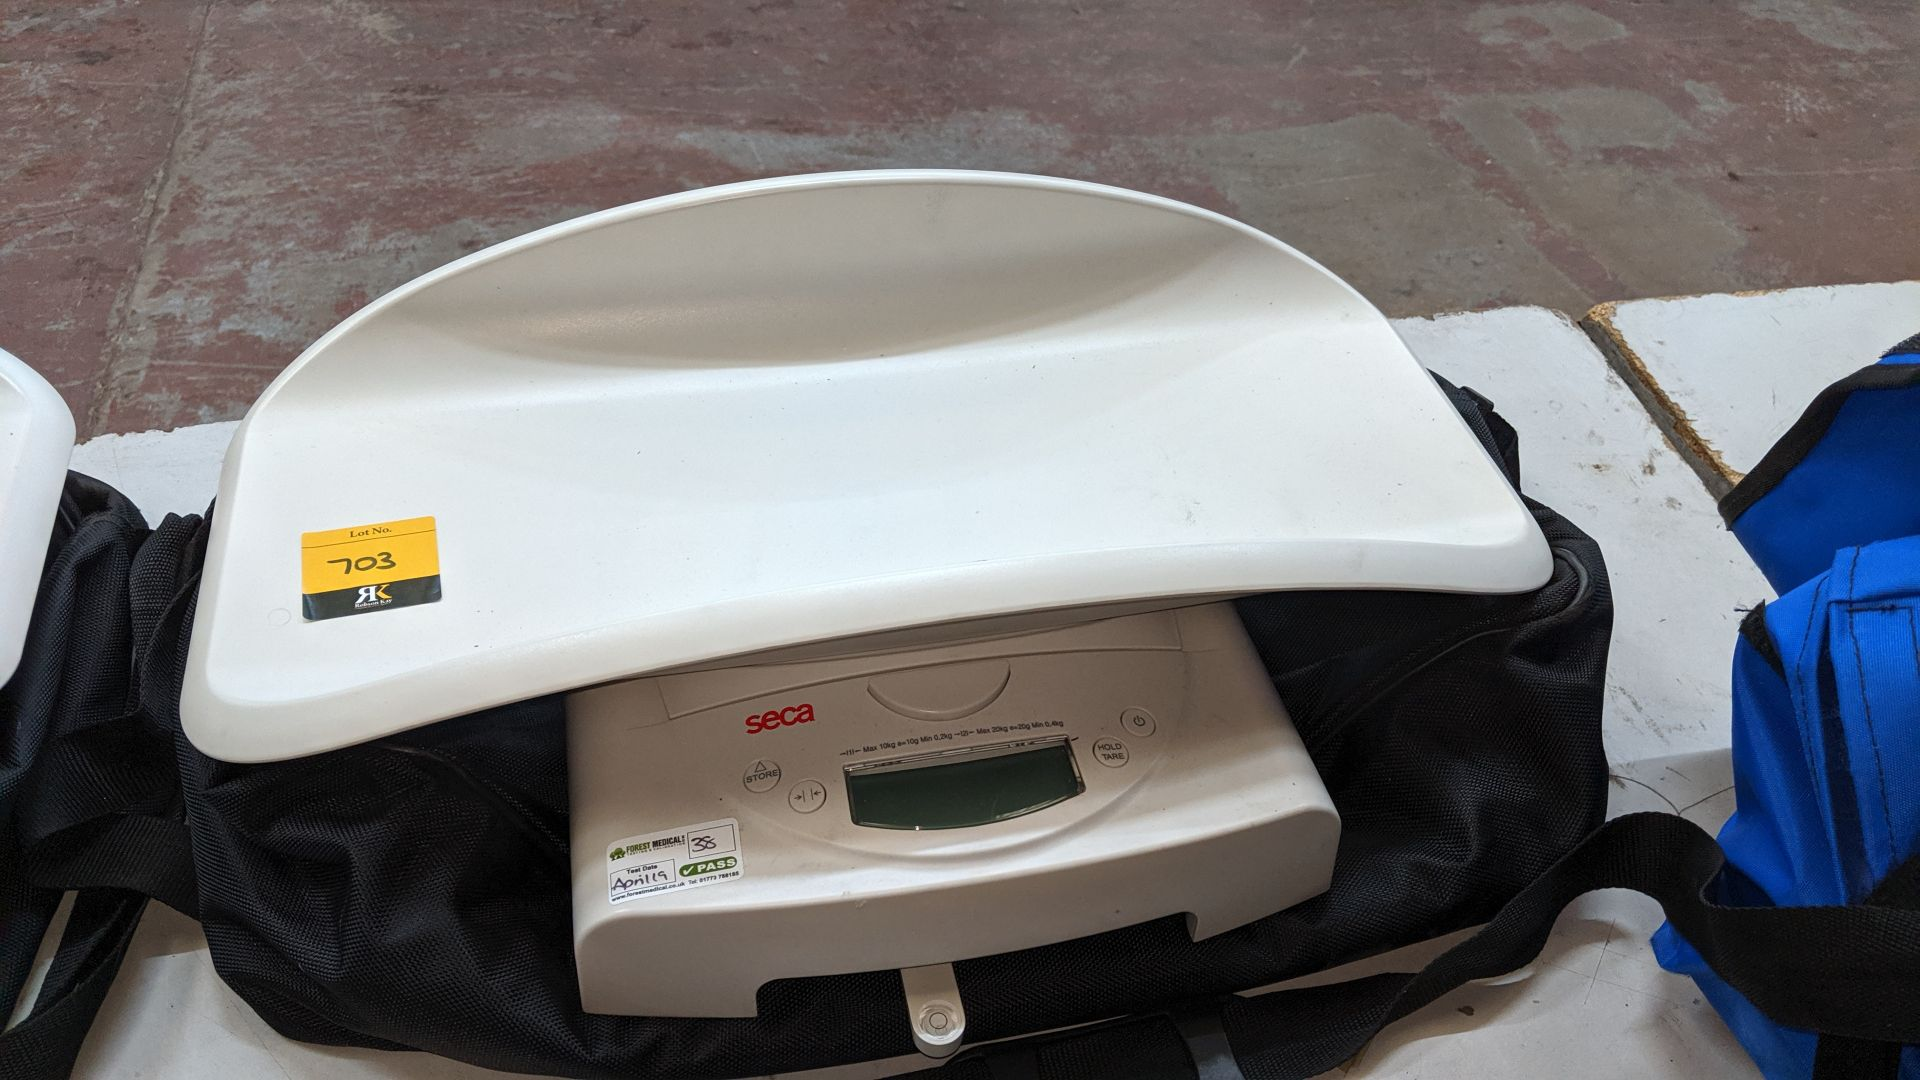 Lot 703 - Seca model 384 baby scales max. capacity 20kg. This is one of a large number of lots used/owned by